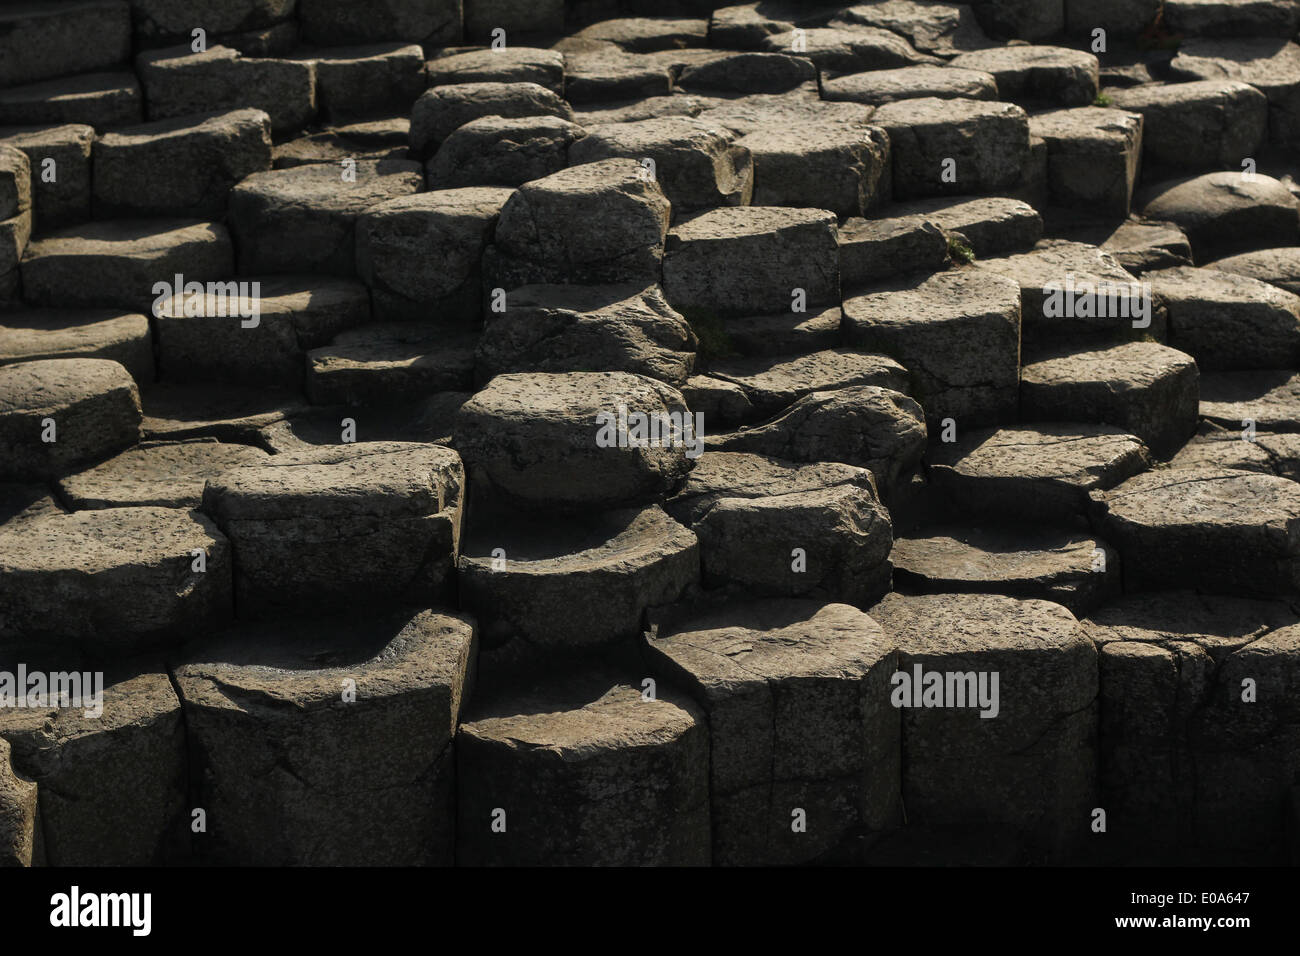 Giant's Causeway - famous visitor site in Northern Ireland (UK) volcanic basalt stones - Stock Image